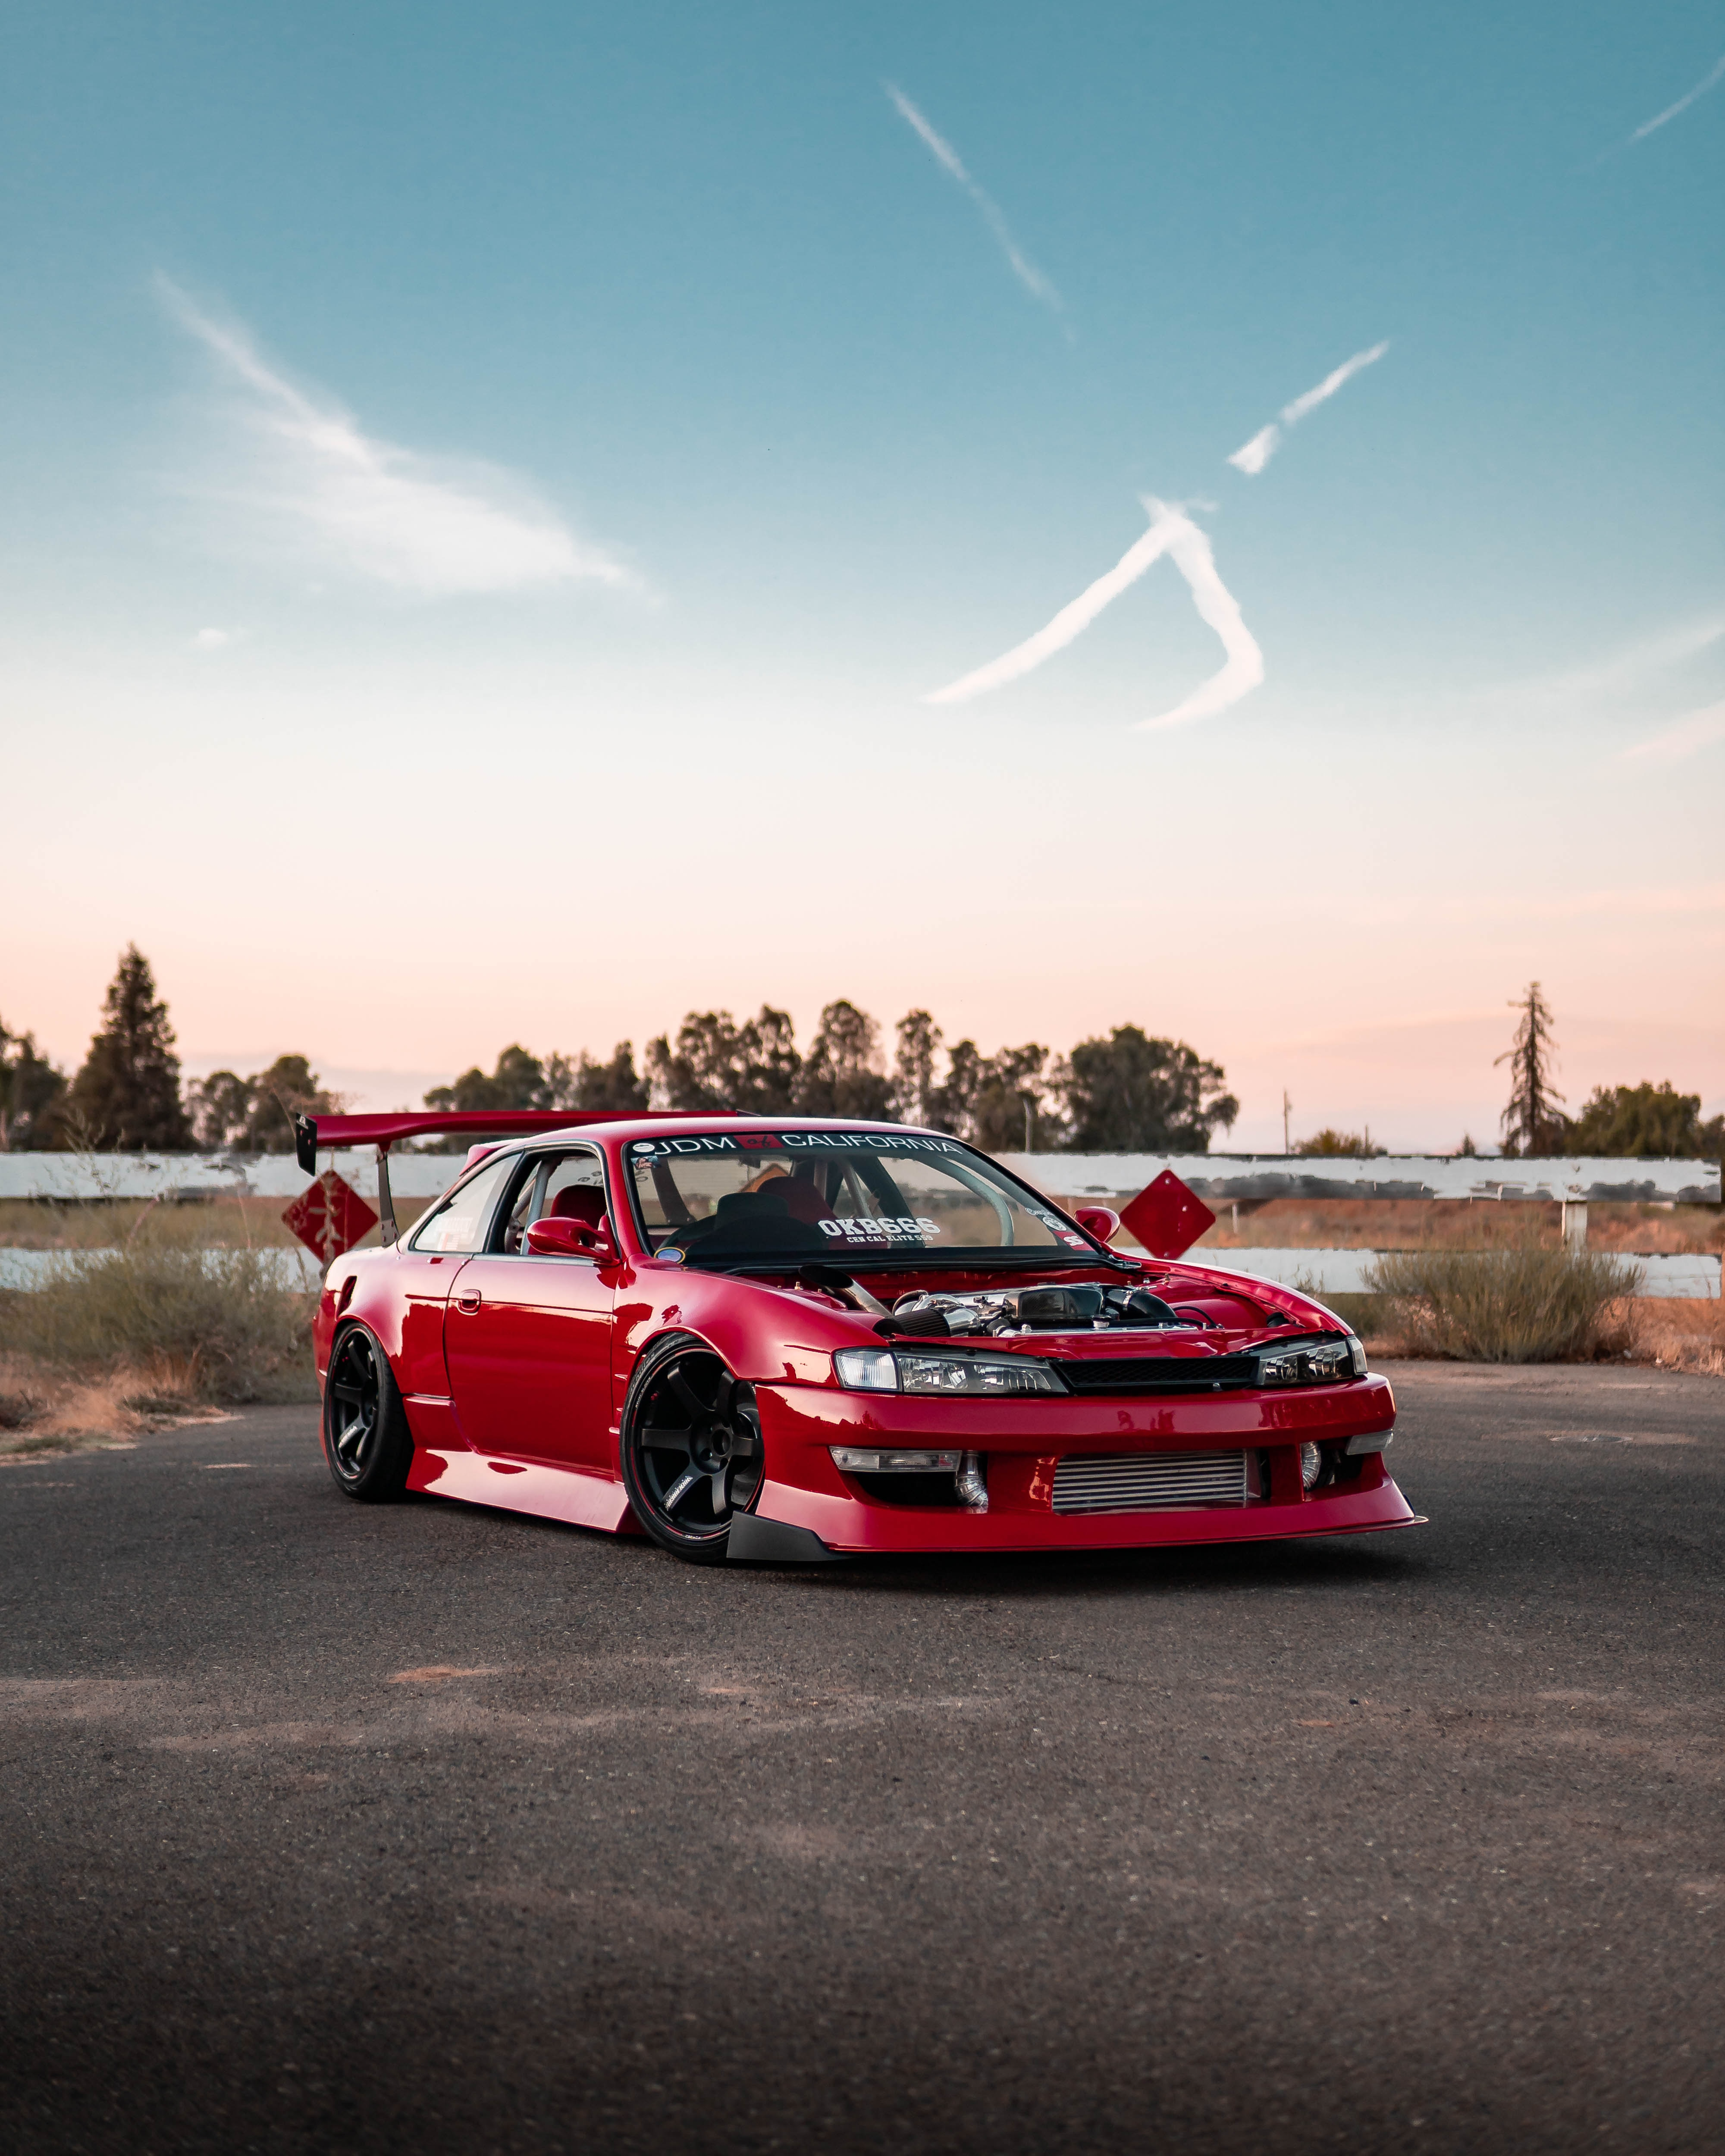 55837 download wallpaper Cars, Car, Machine, Sports Car, Sports, Tuning, Side View screensavers and pictures for free